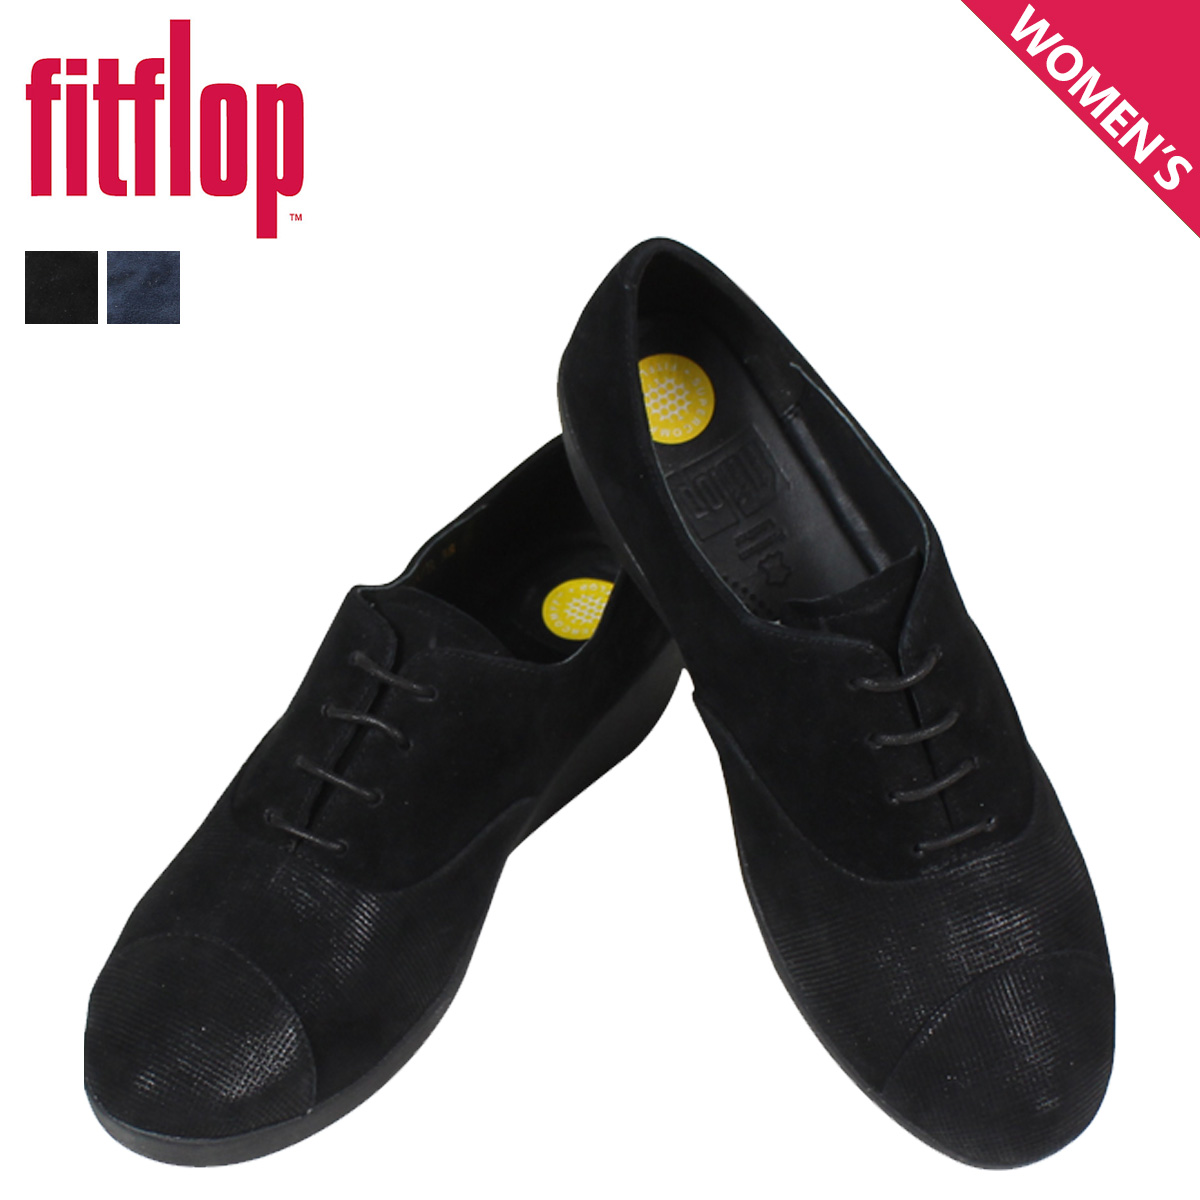 91dd4941dd8 ALLSPORTS  Fit flops FitFlop Oxford Shoes F-POP OXFORD OPUL 657 ...